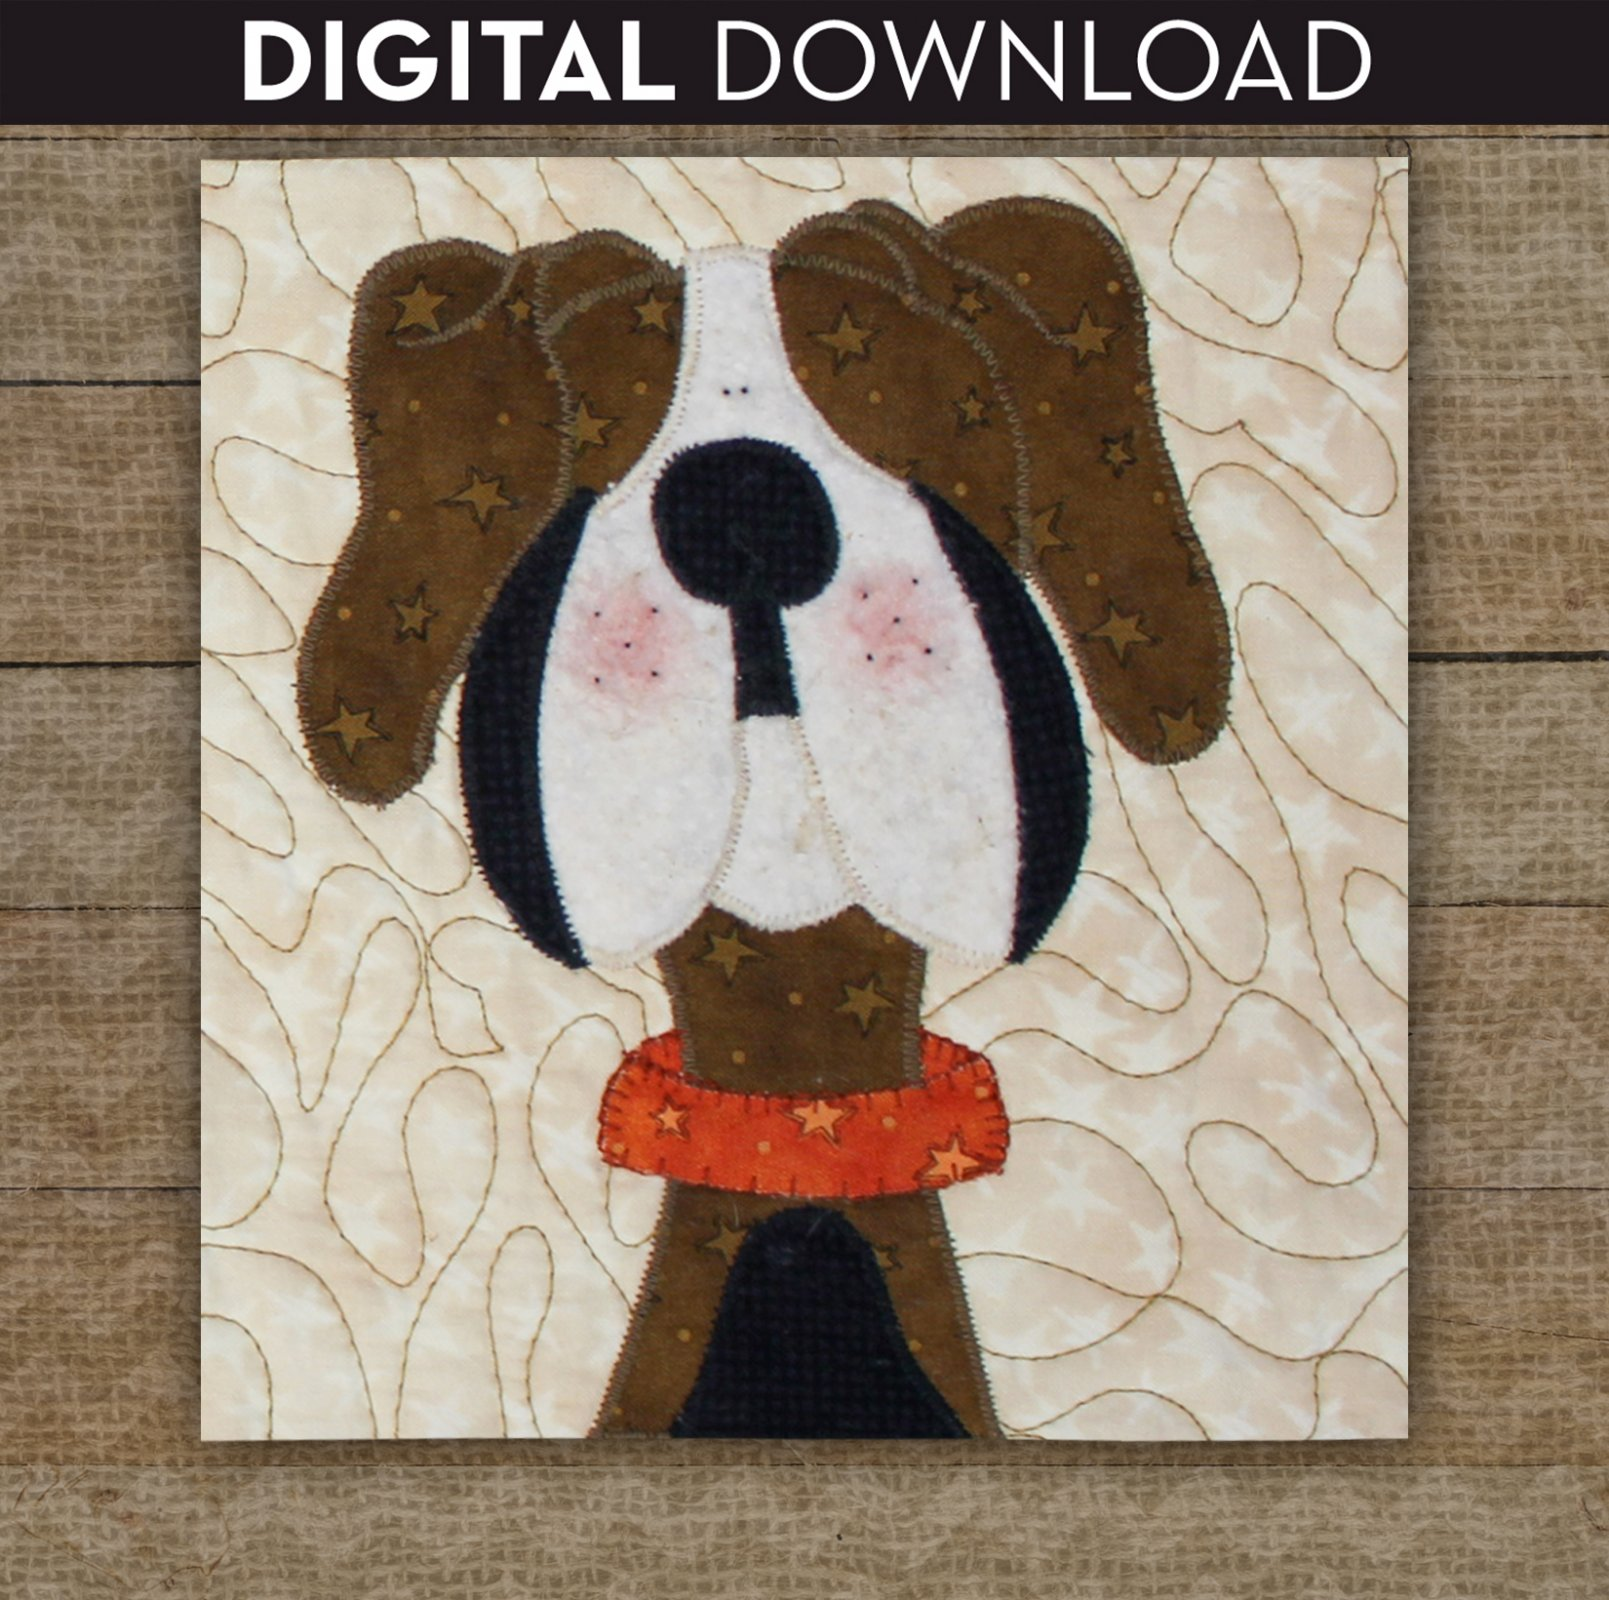 Hound Dog - Download